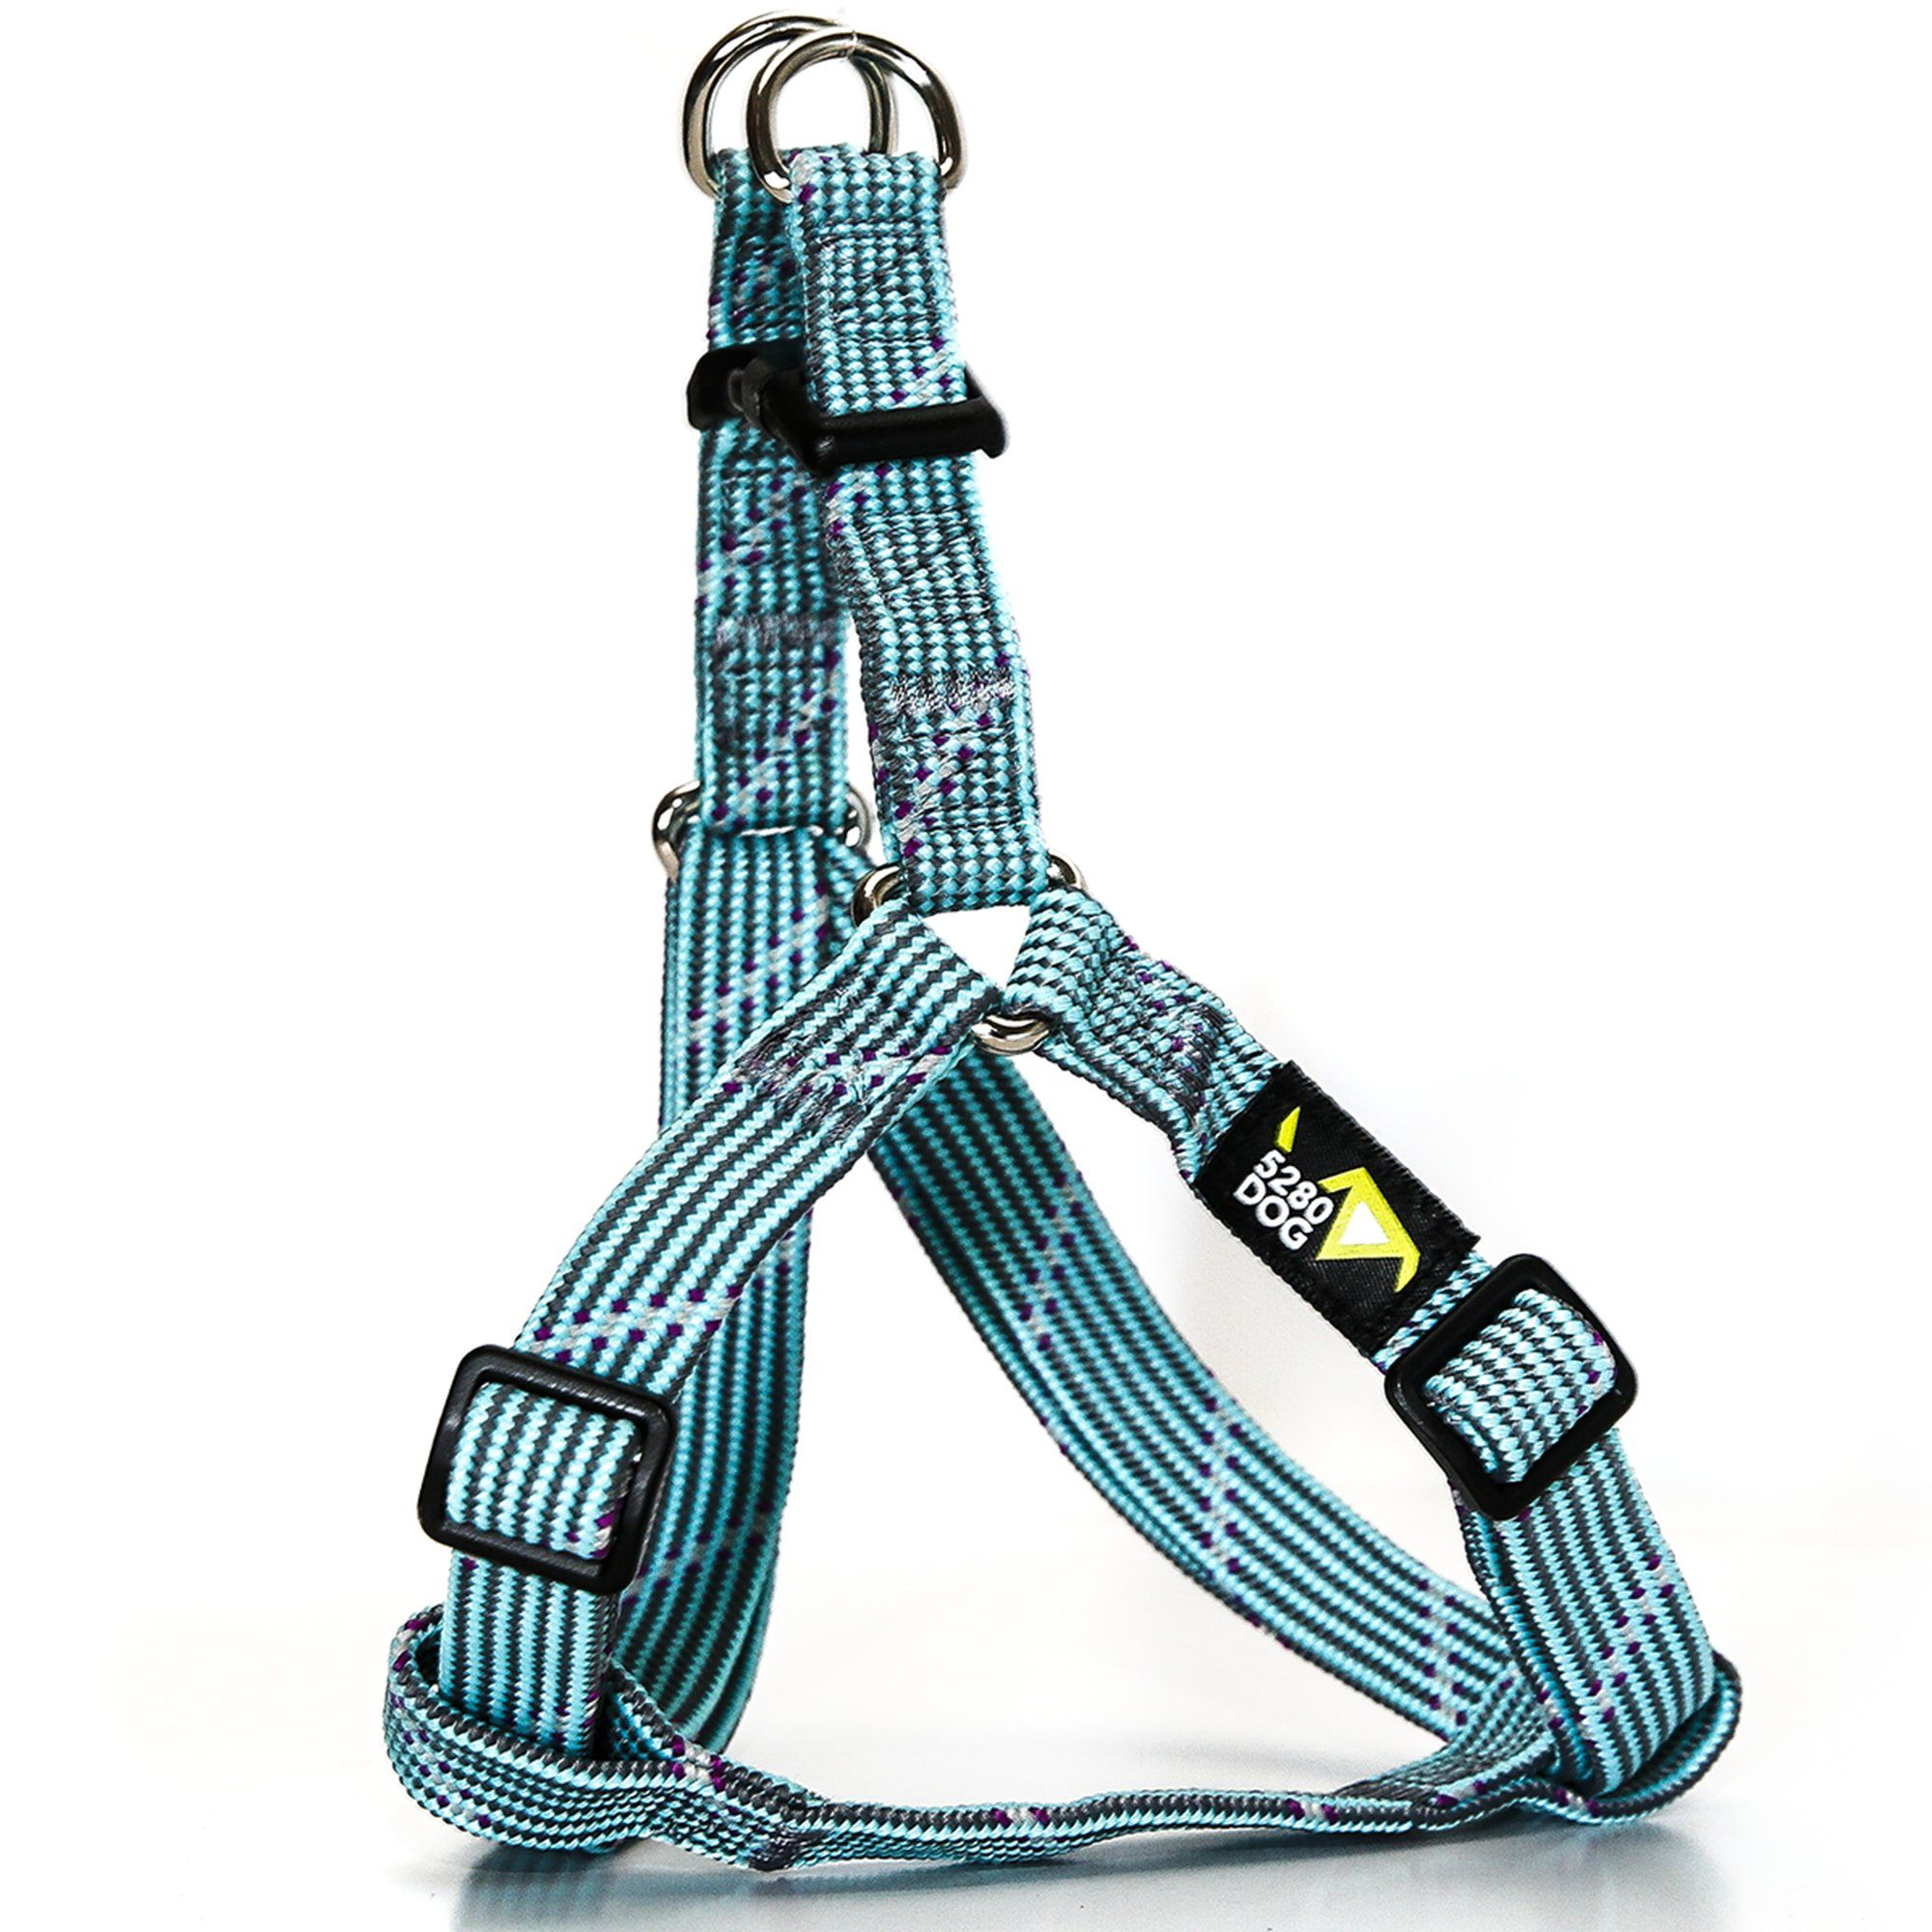 5280DOG Turquoise Braided Step-In Harness, Large